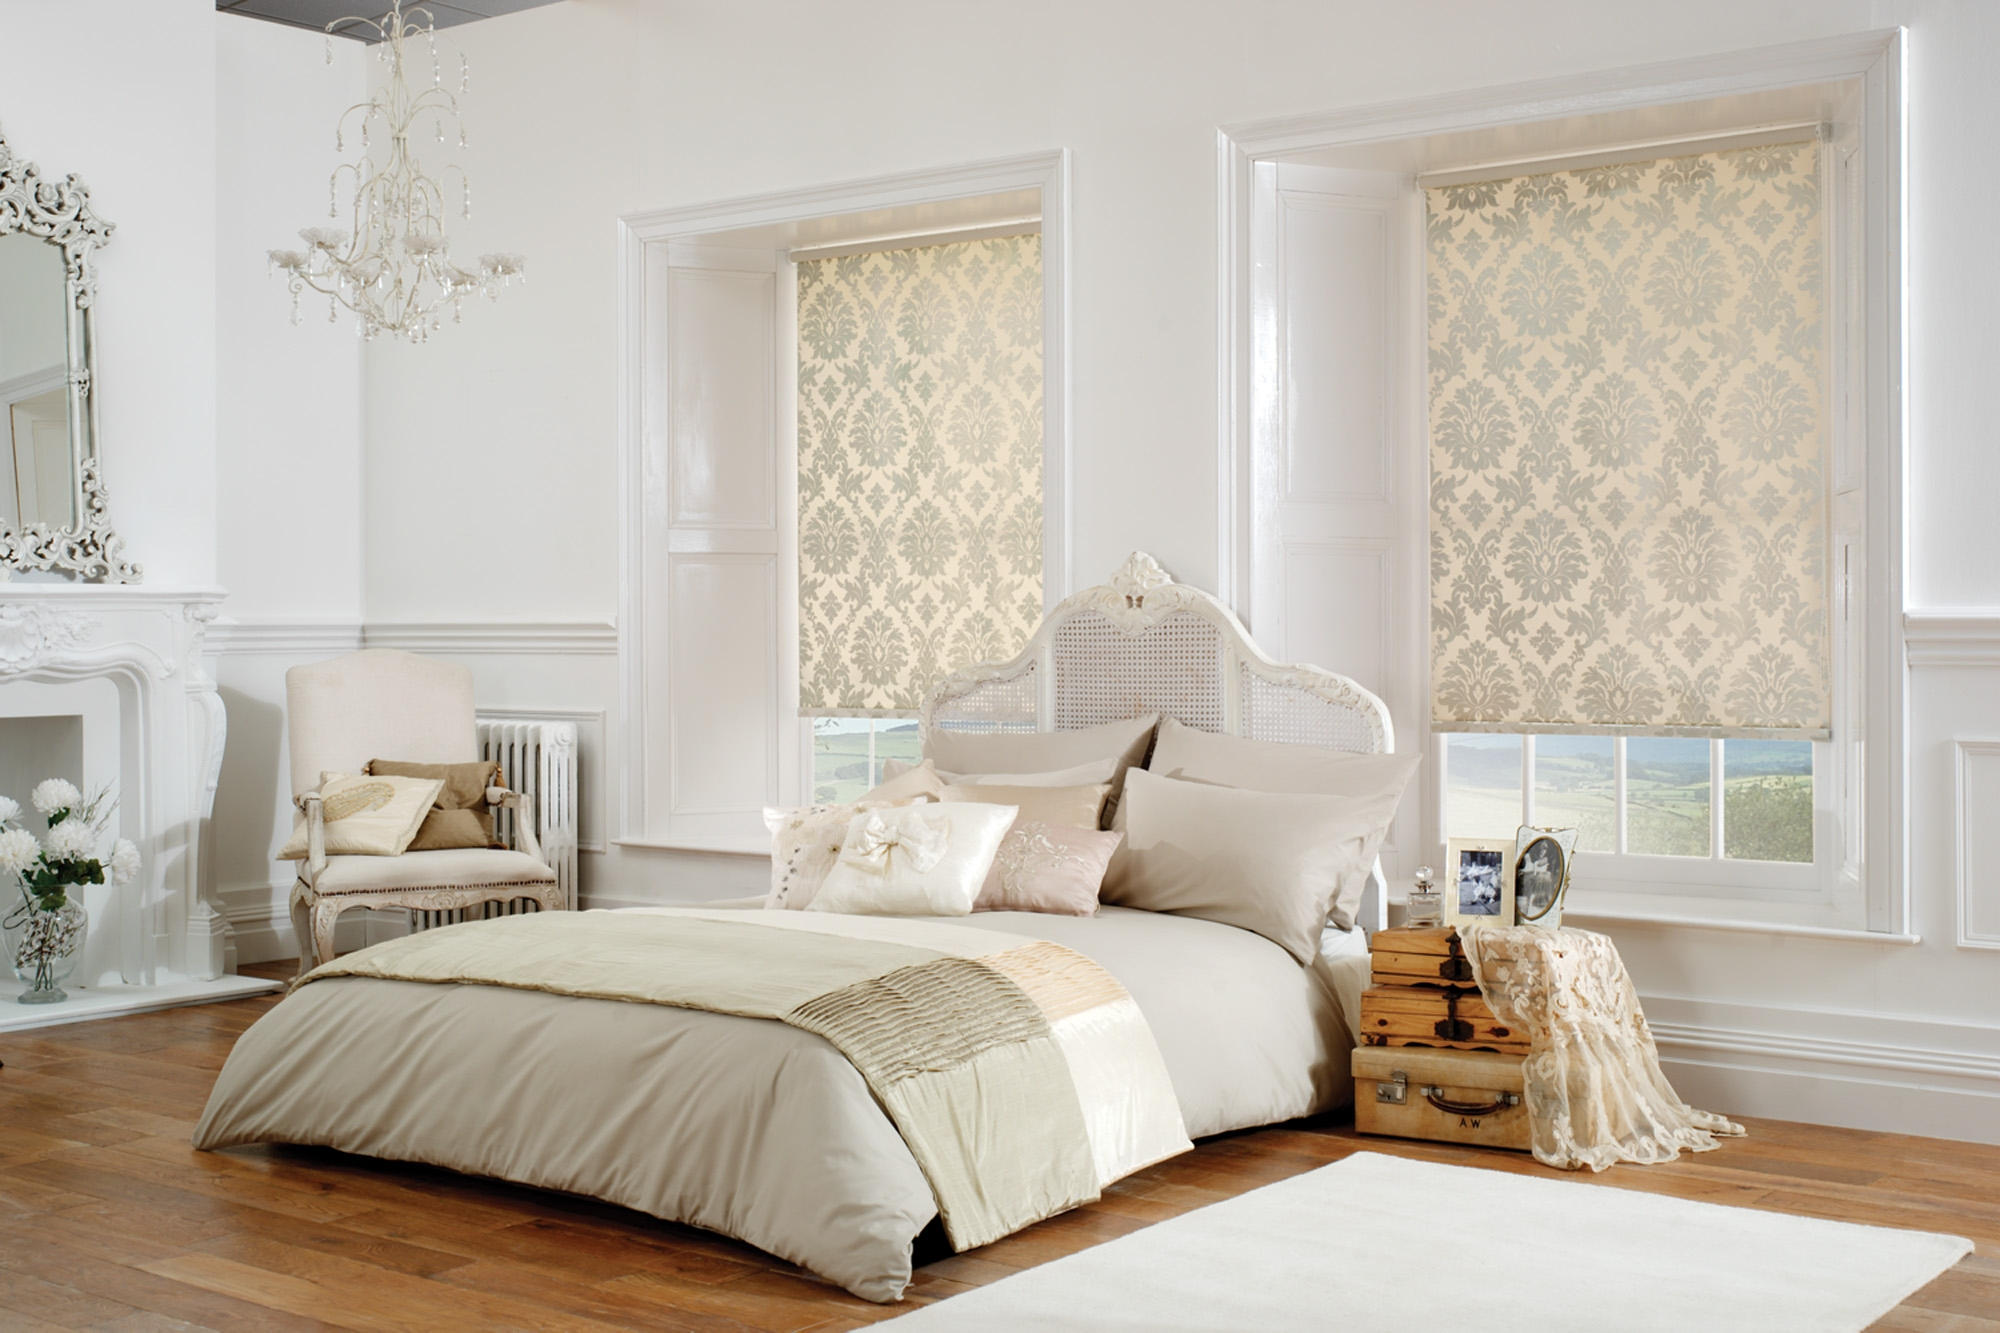 Featured Image of Luxury Roman Blinds